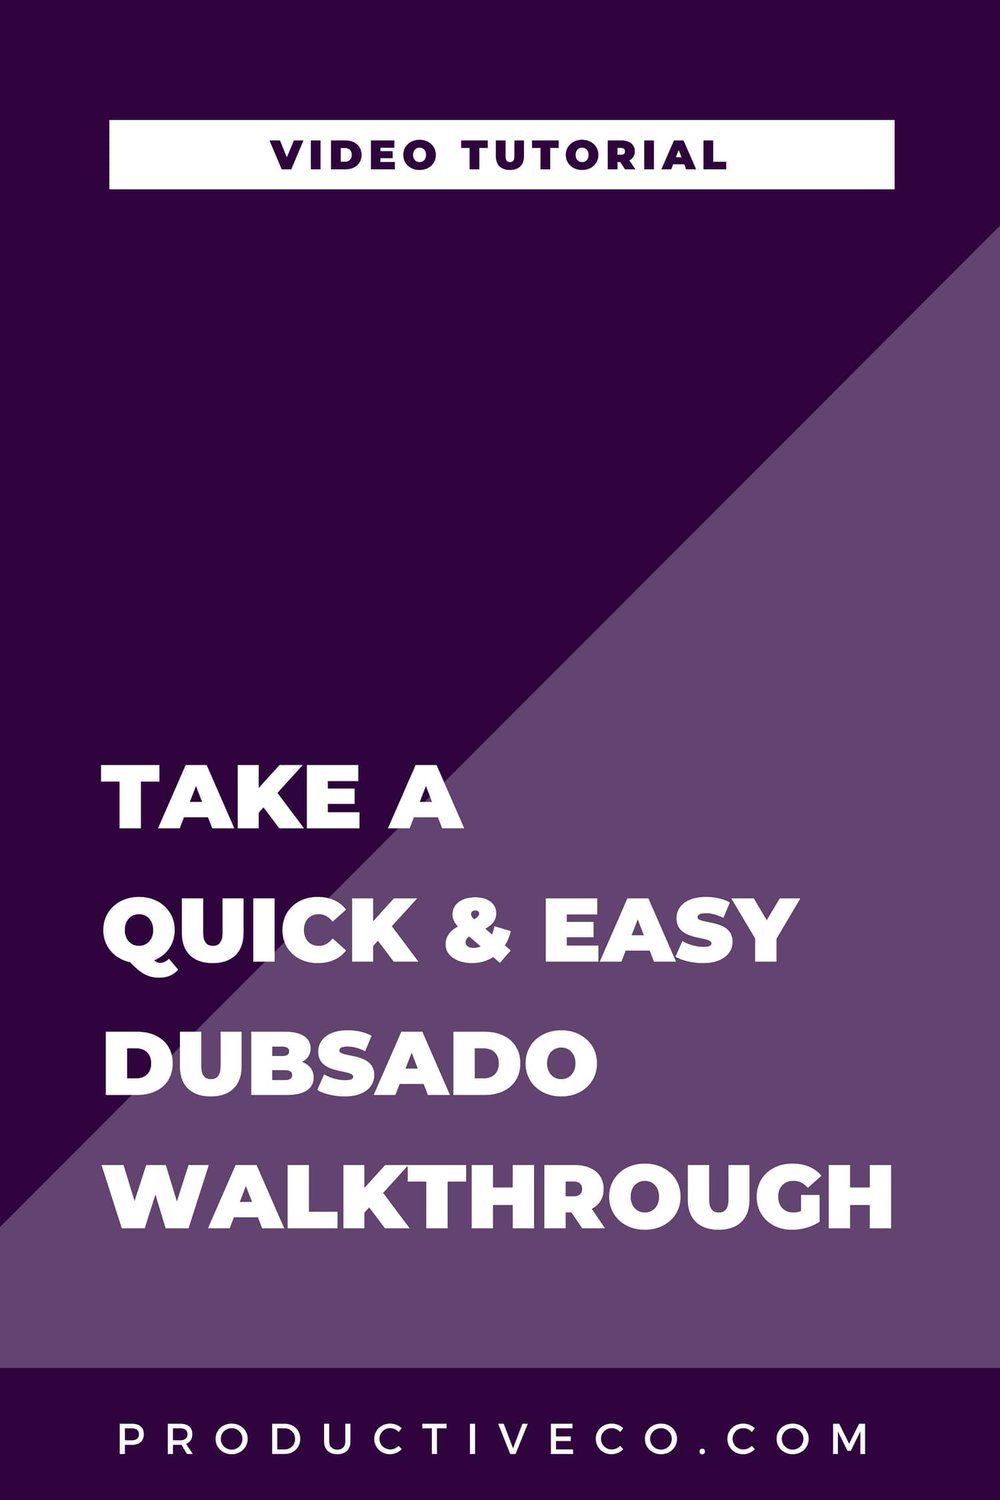 A Quick & Easy Dubsado Walkthrough Video. Take a tour of Dubsado in this tutorial.